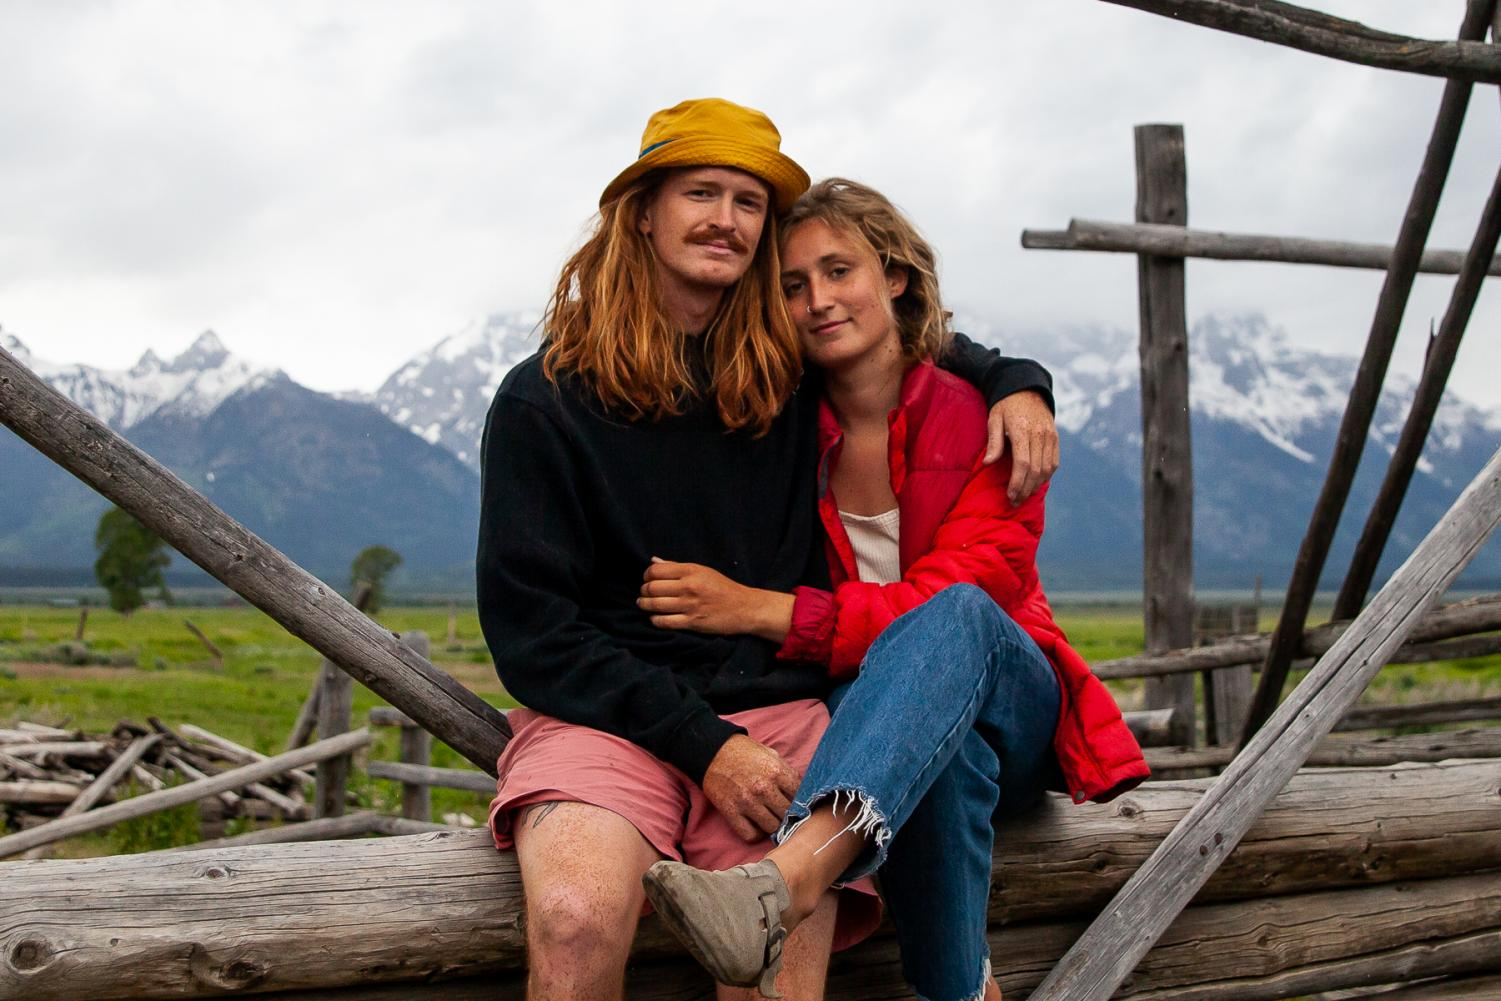 Photo Editor Nate Stephenson and partner Megan Stewart on June 23, 2019 near Grand Teton National Park.